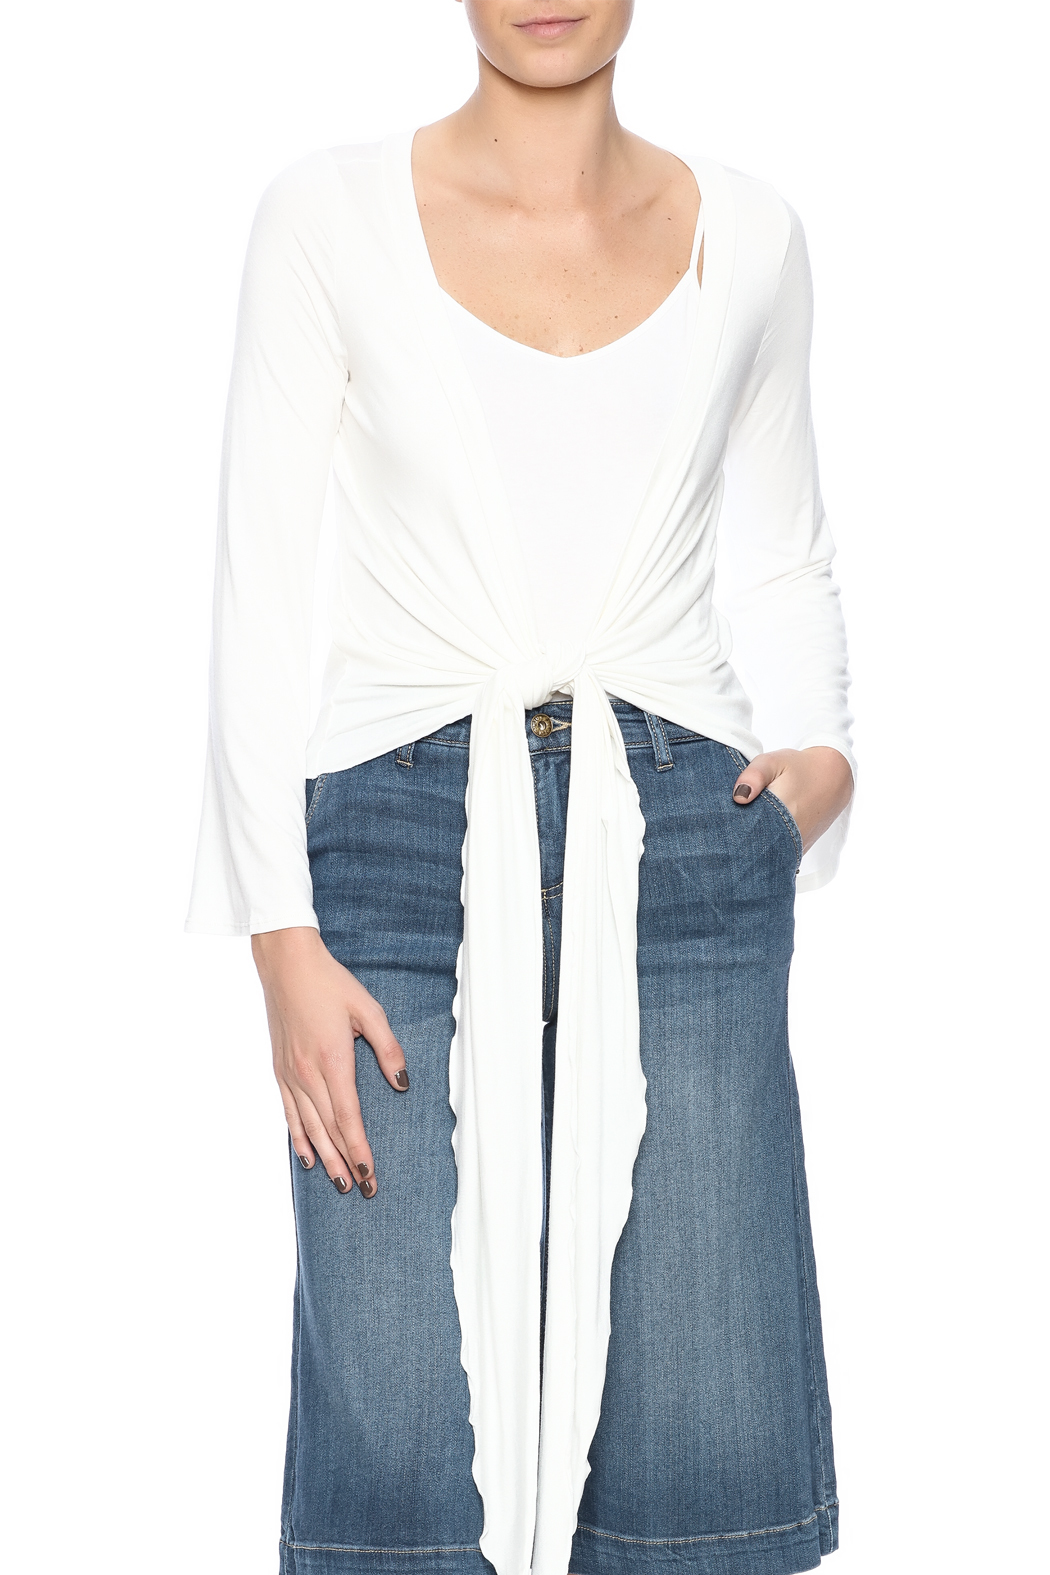 Clea Ray Perfect Wrap Top - Front Cropped Image